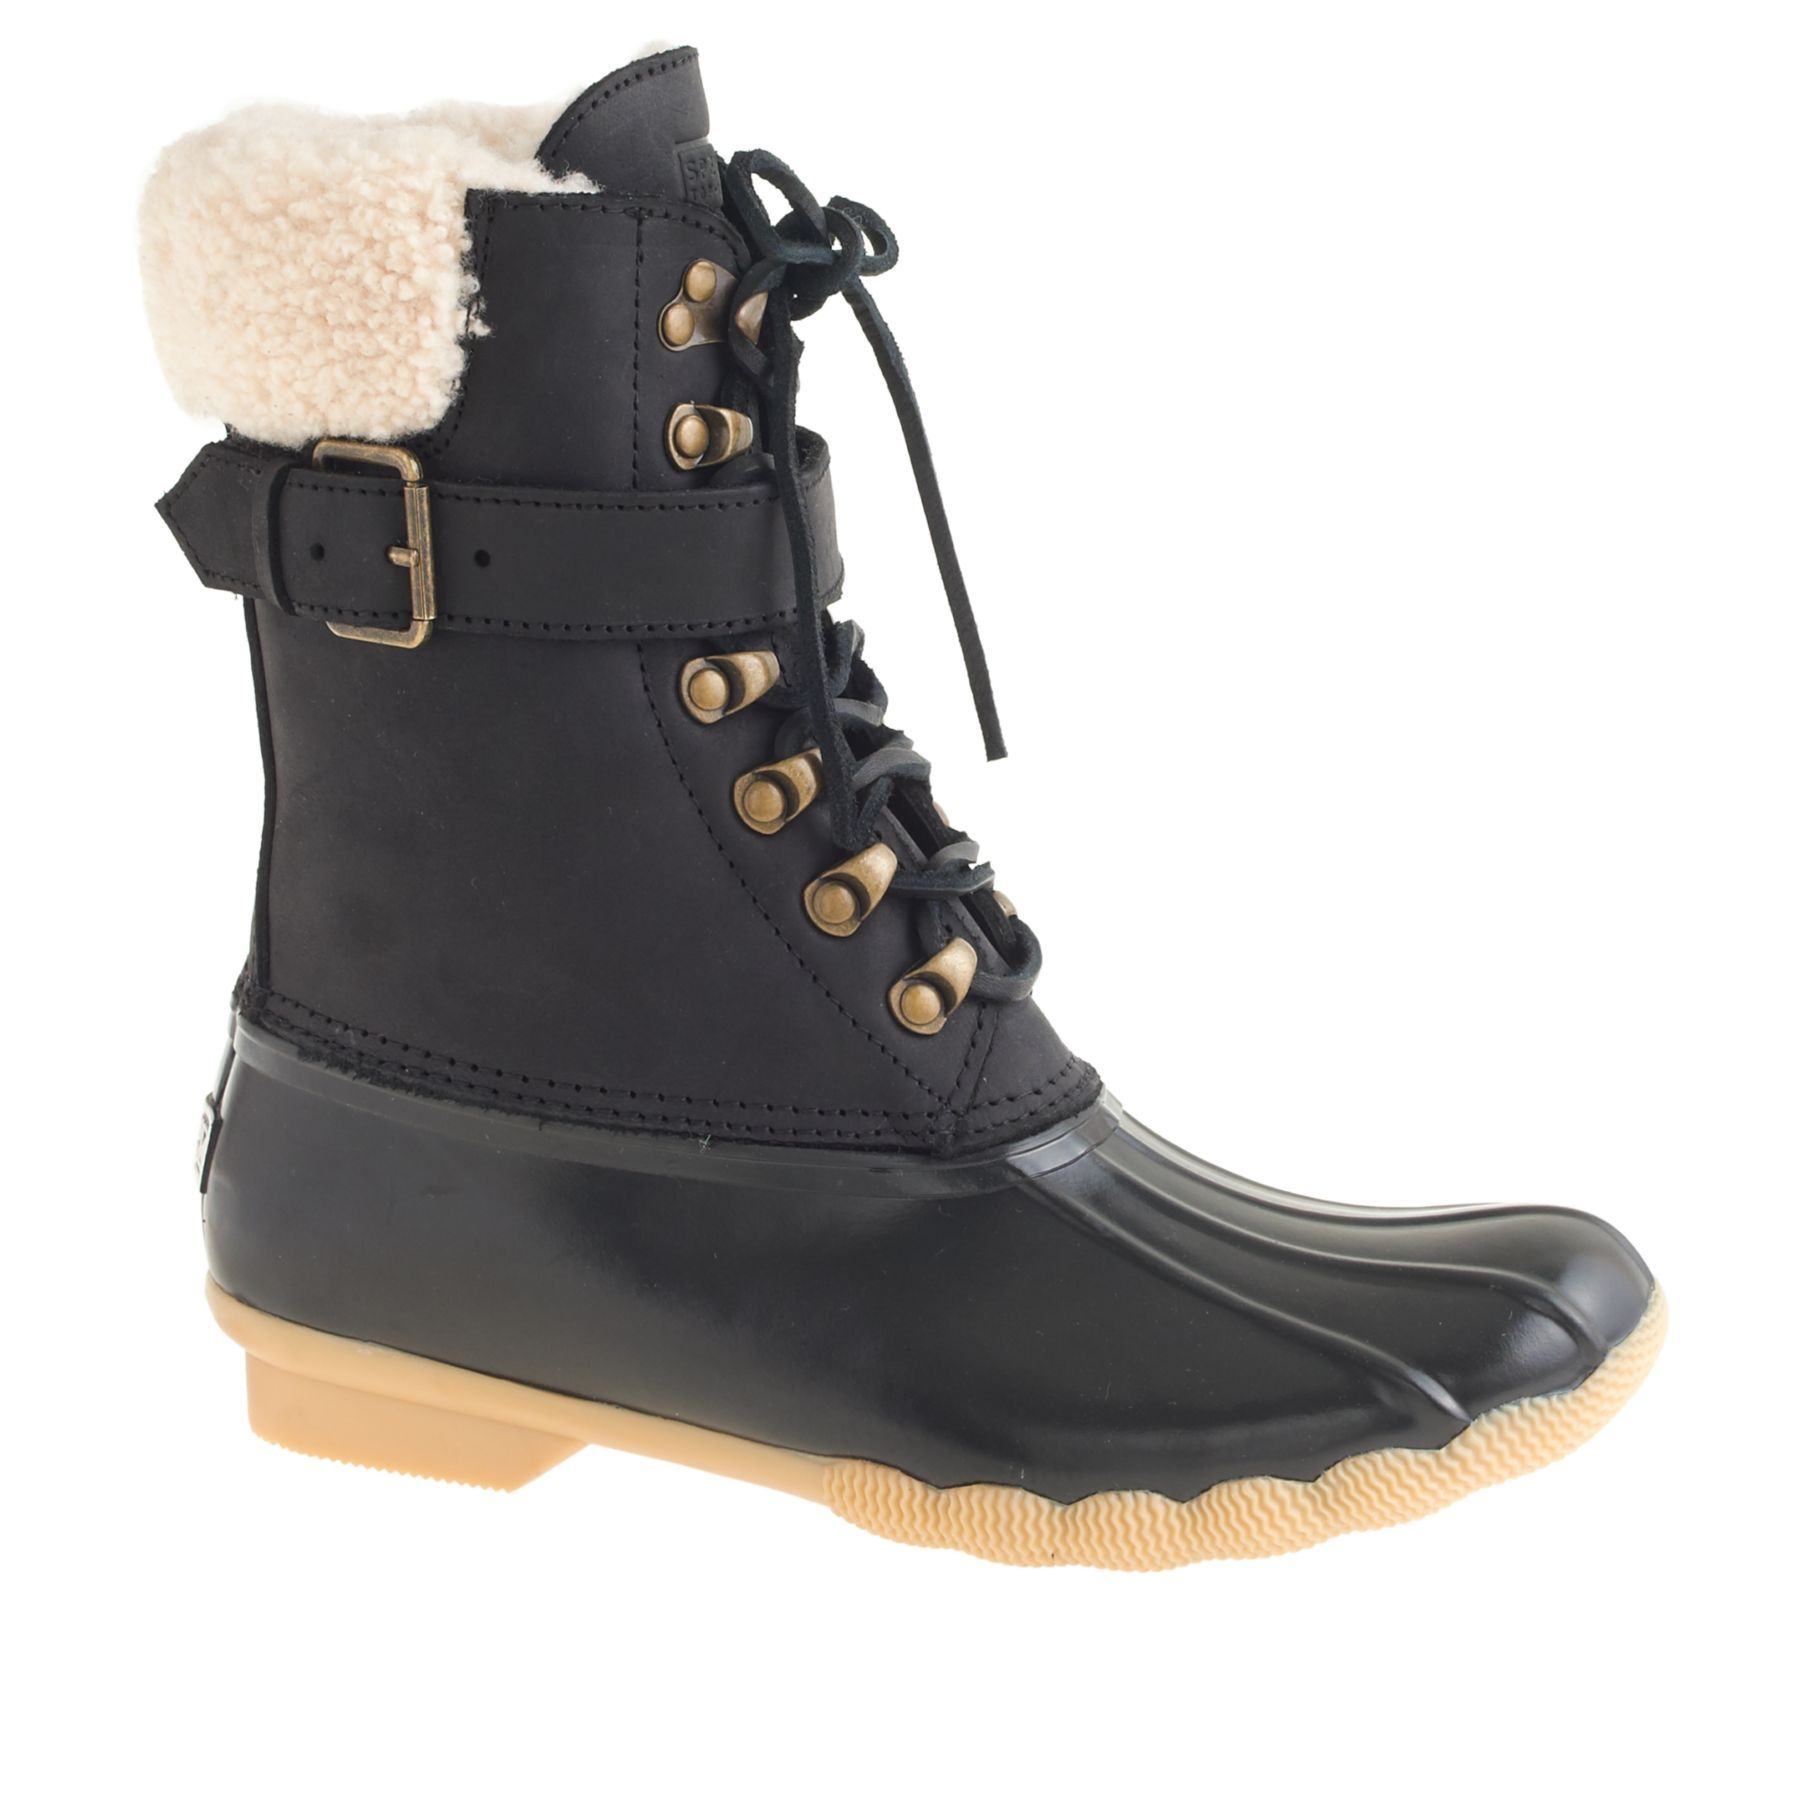 8a46f9aa48822 Women s Sperry Top-Sider for J.Crew shearwater buckle boots.